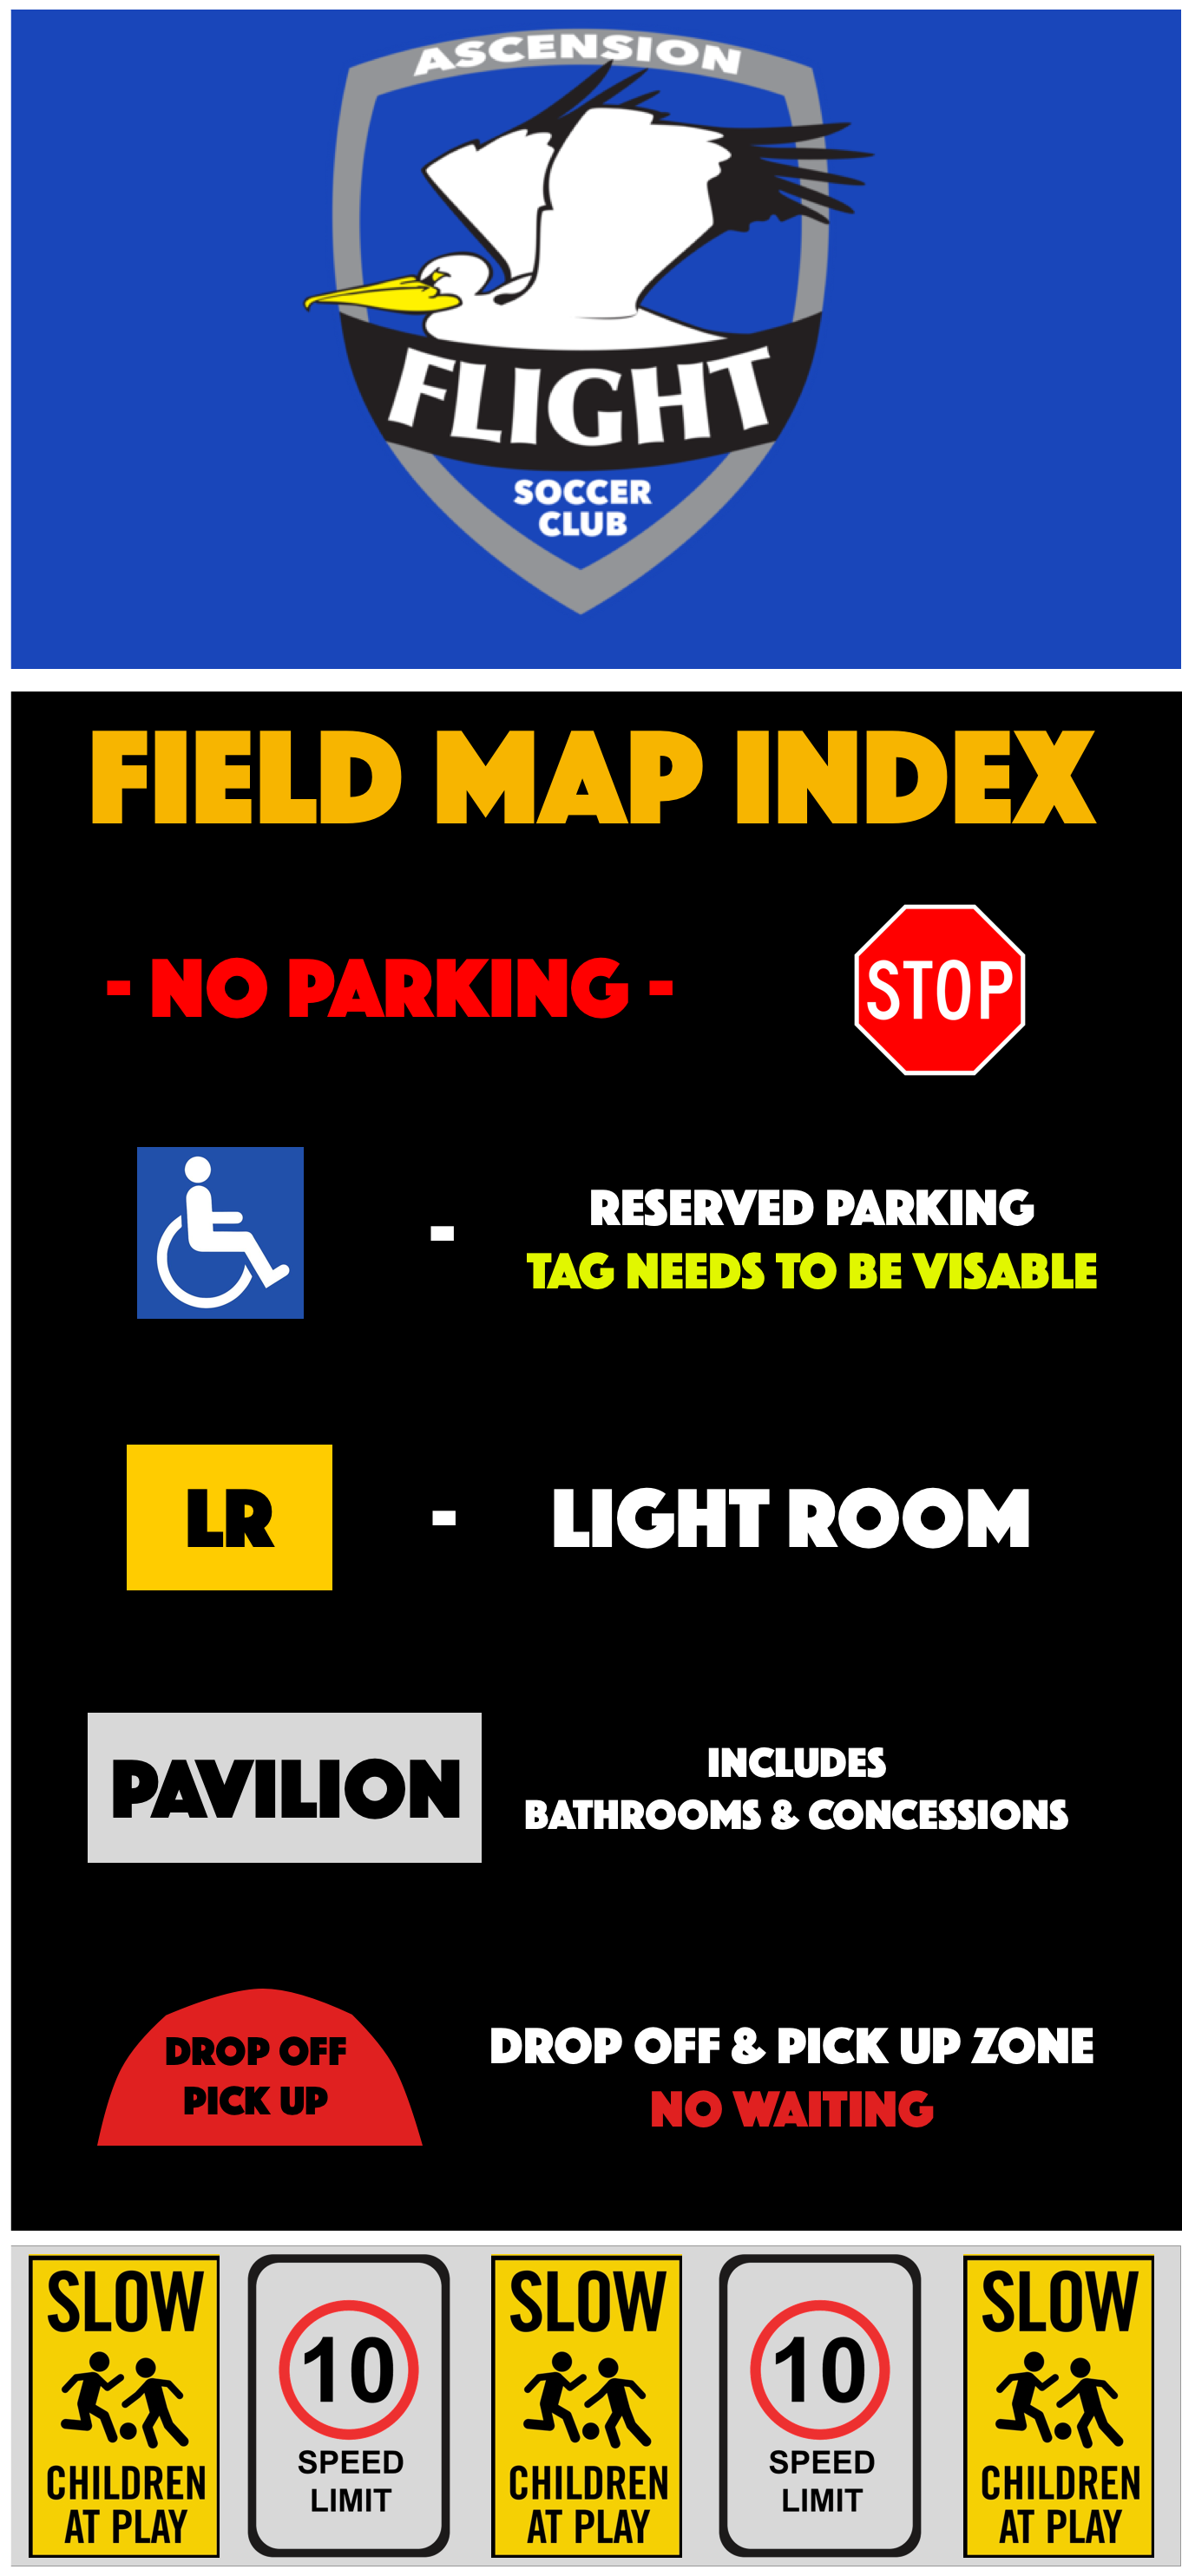 Field Map Index - Right Side